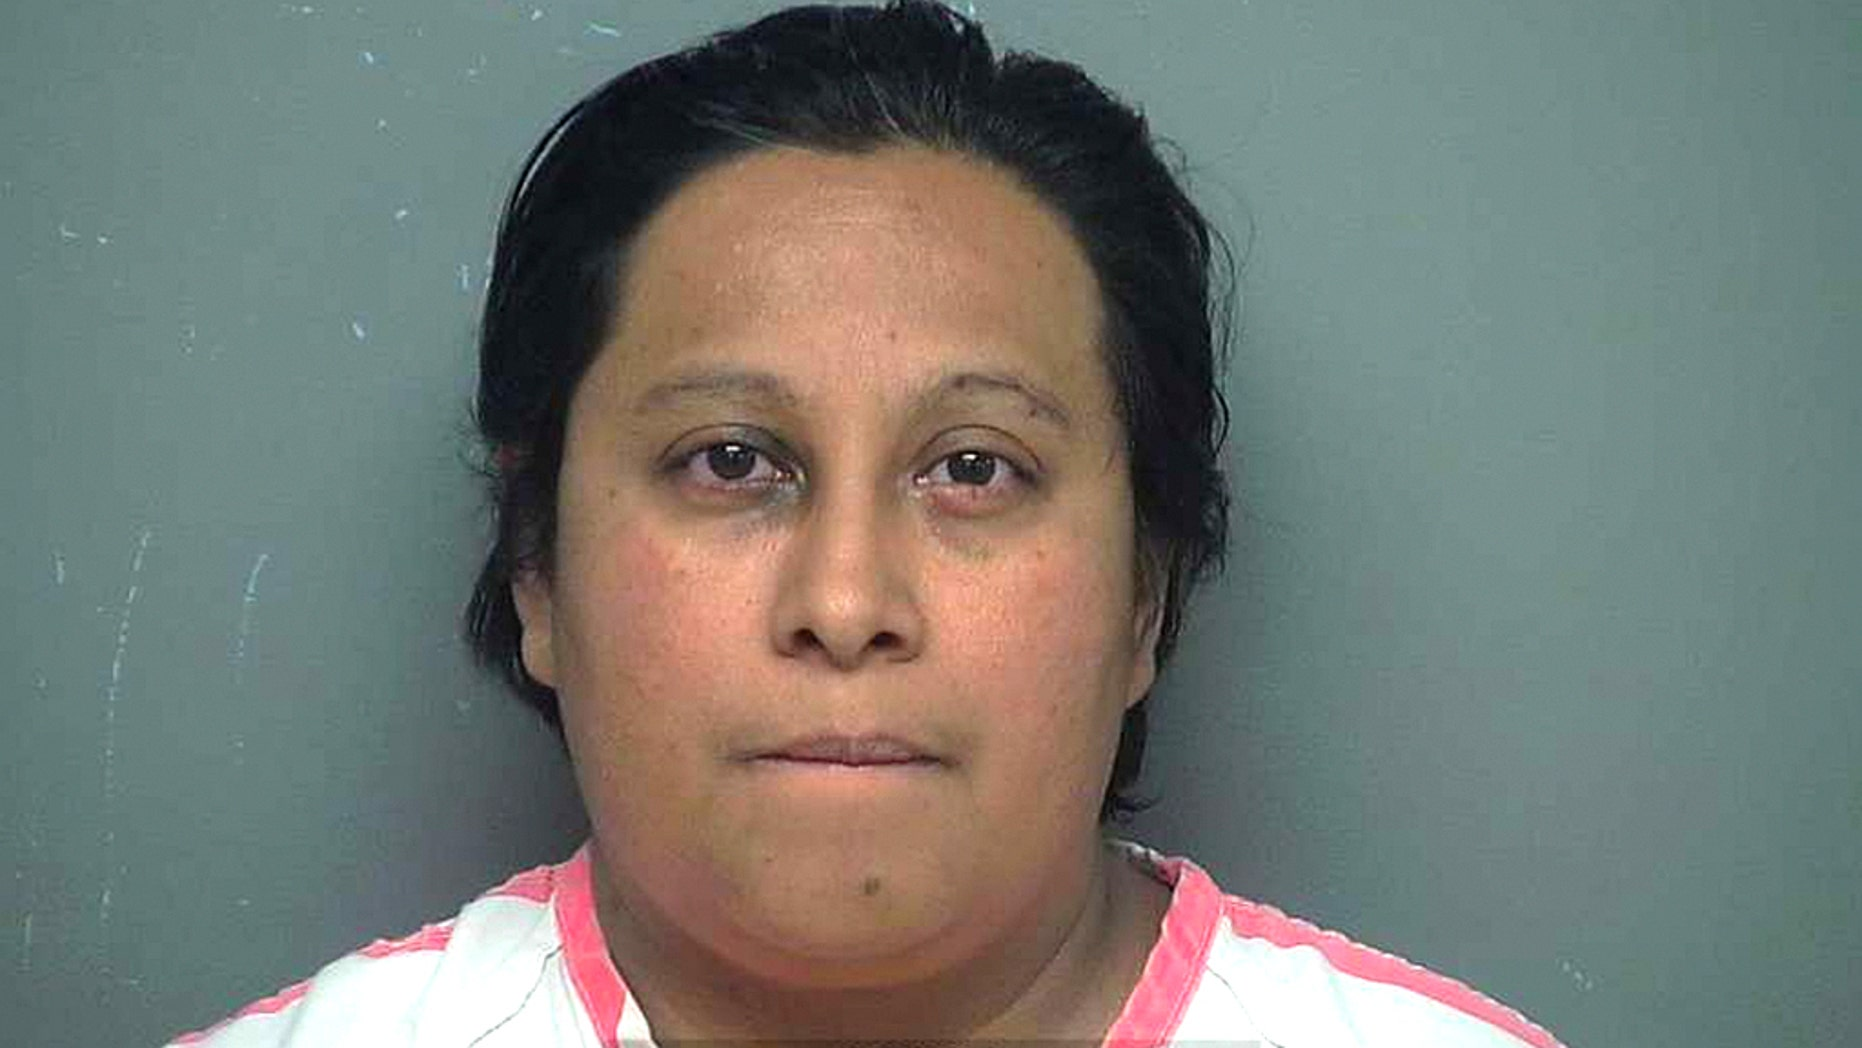 Laura Janeth Garza, a 37-year-old Mexican national, was indicted May 10 on charges of voter impersonation and ineligible voting.